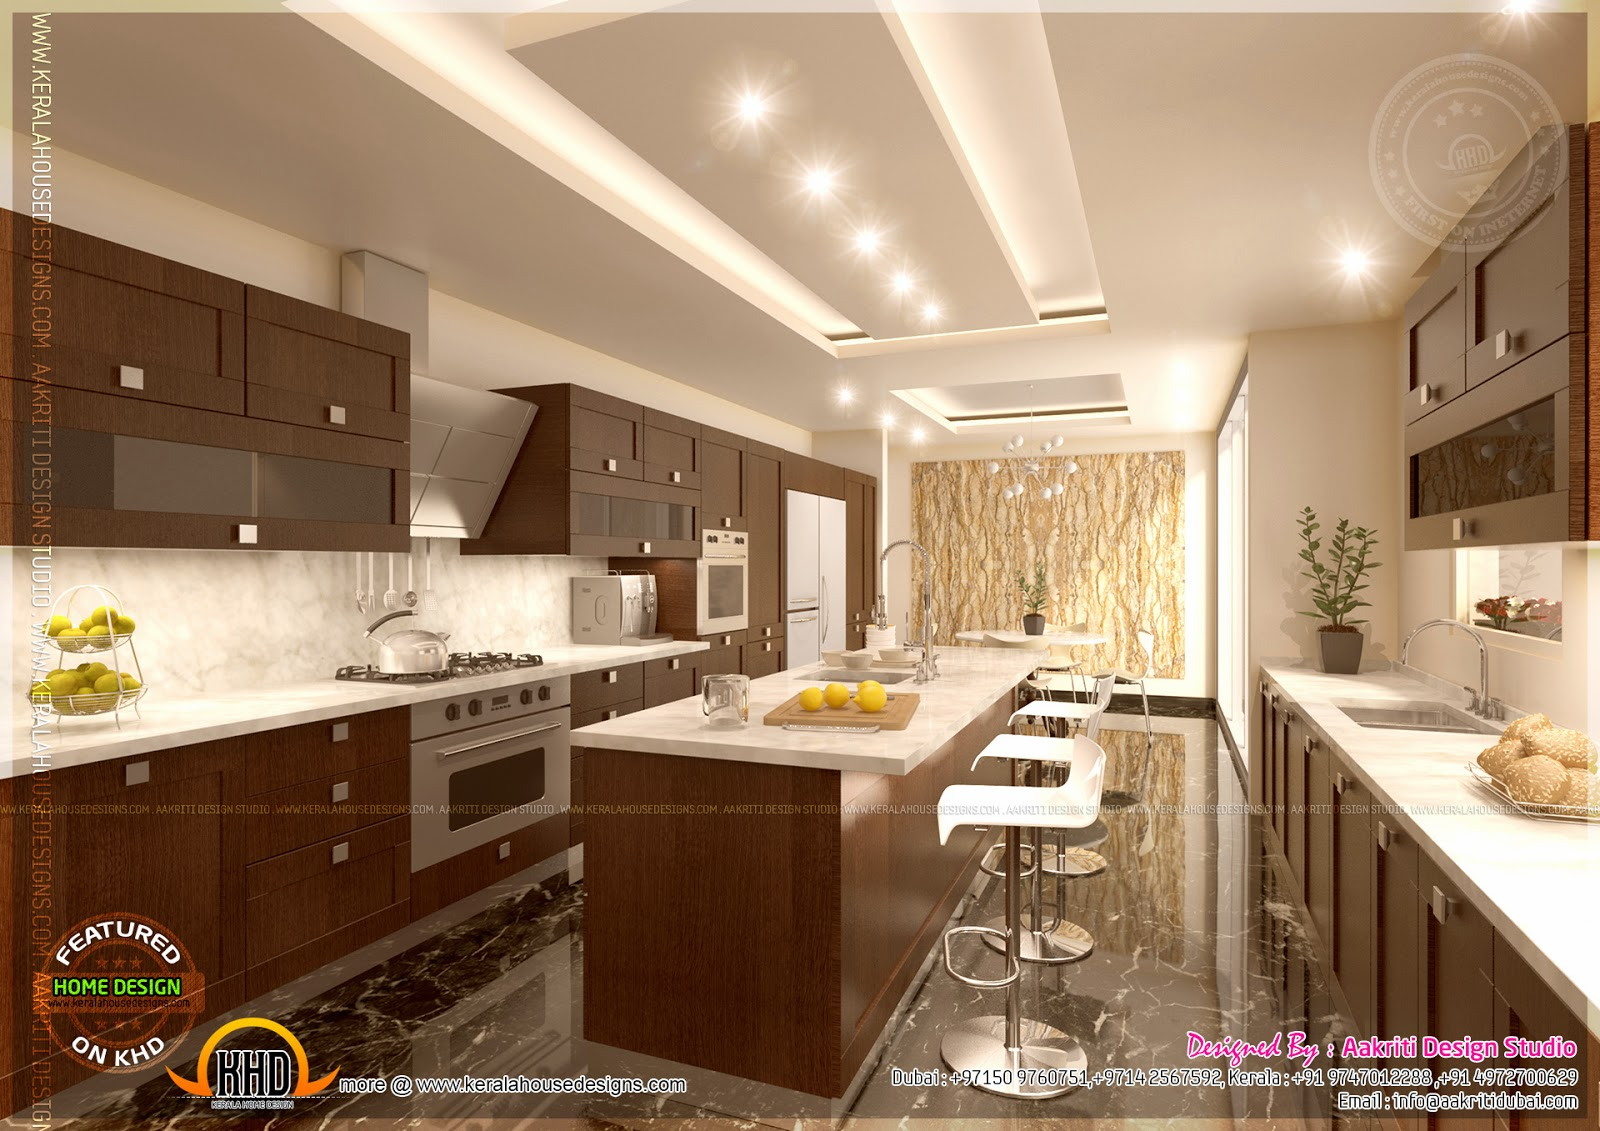 Kitchen designs by aakriti design studio kerala home for House design kitchen ideas